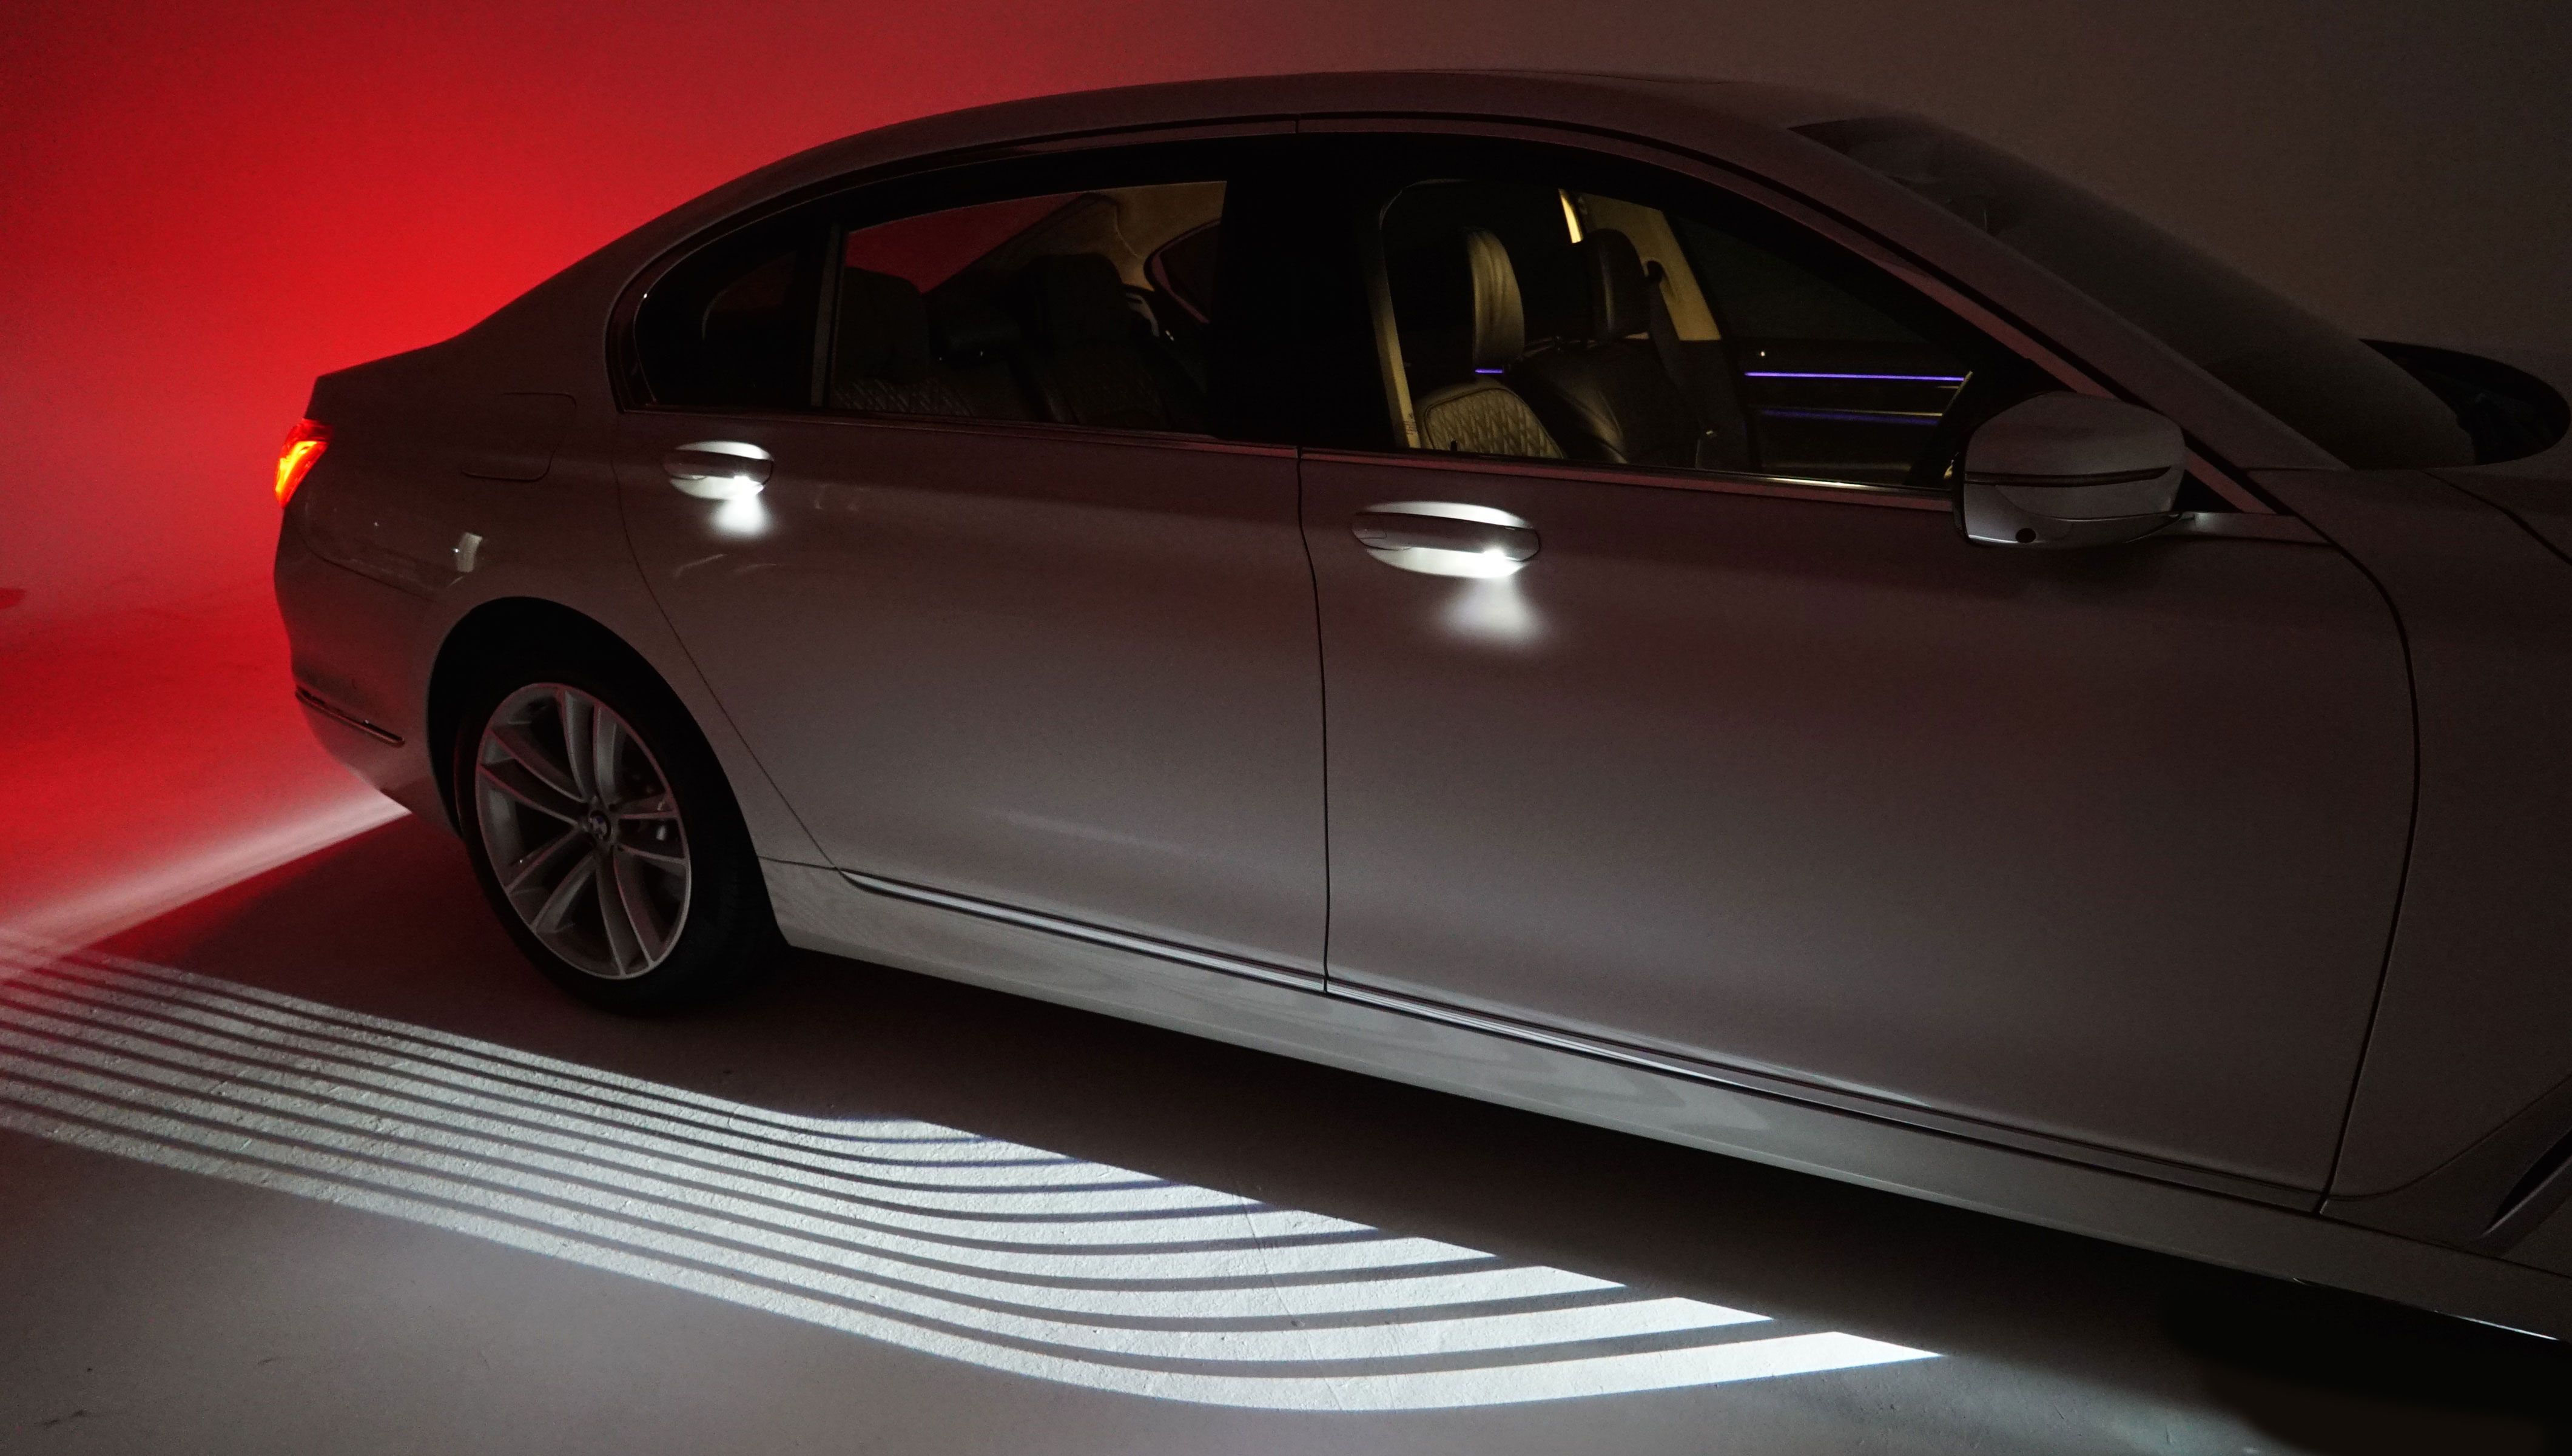 Bmw 7 Series 2016 Welcome Light Carpet It Took 3 Years To Get This Into Production Bmw 7series Exteriorlights Ca Luxury Car Interior Bmw Luxury Cars